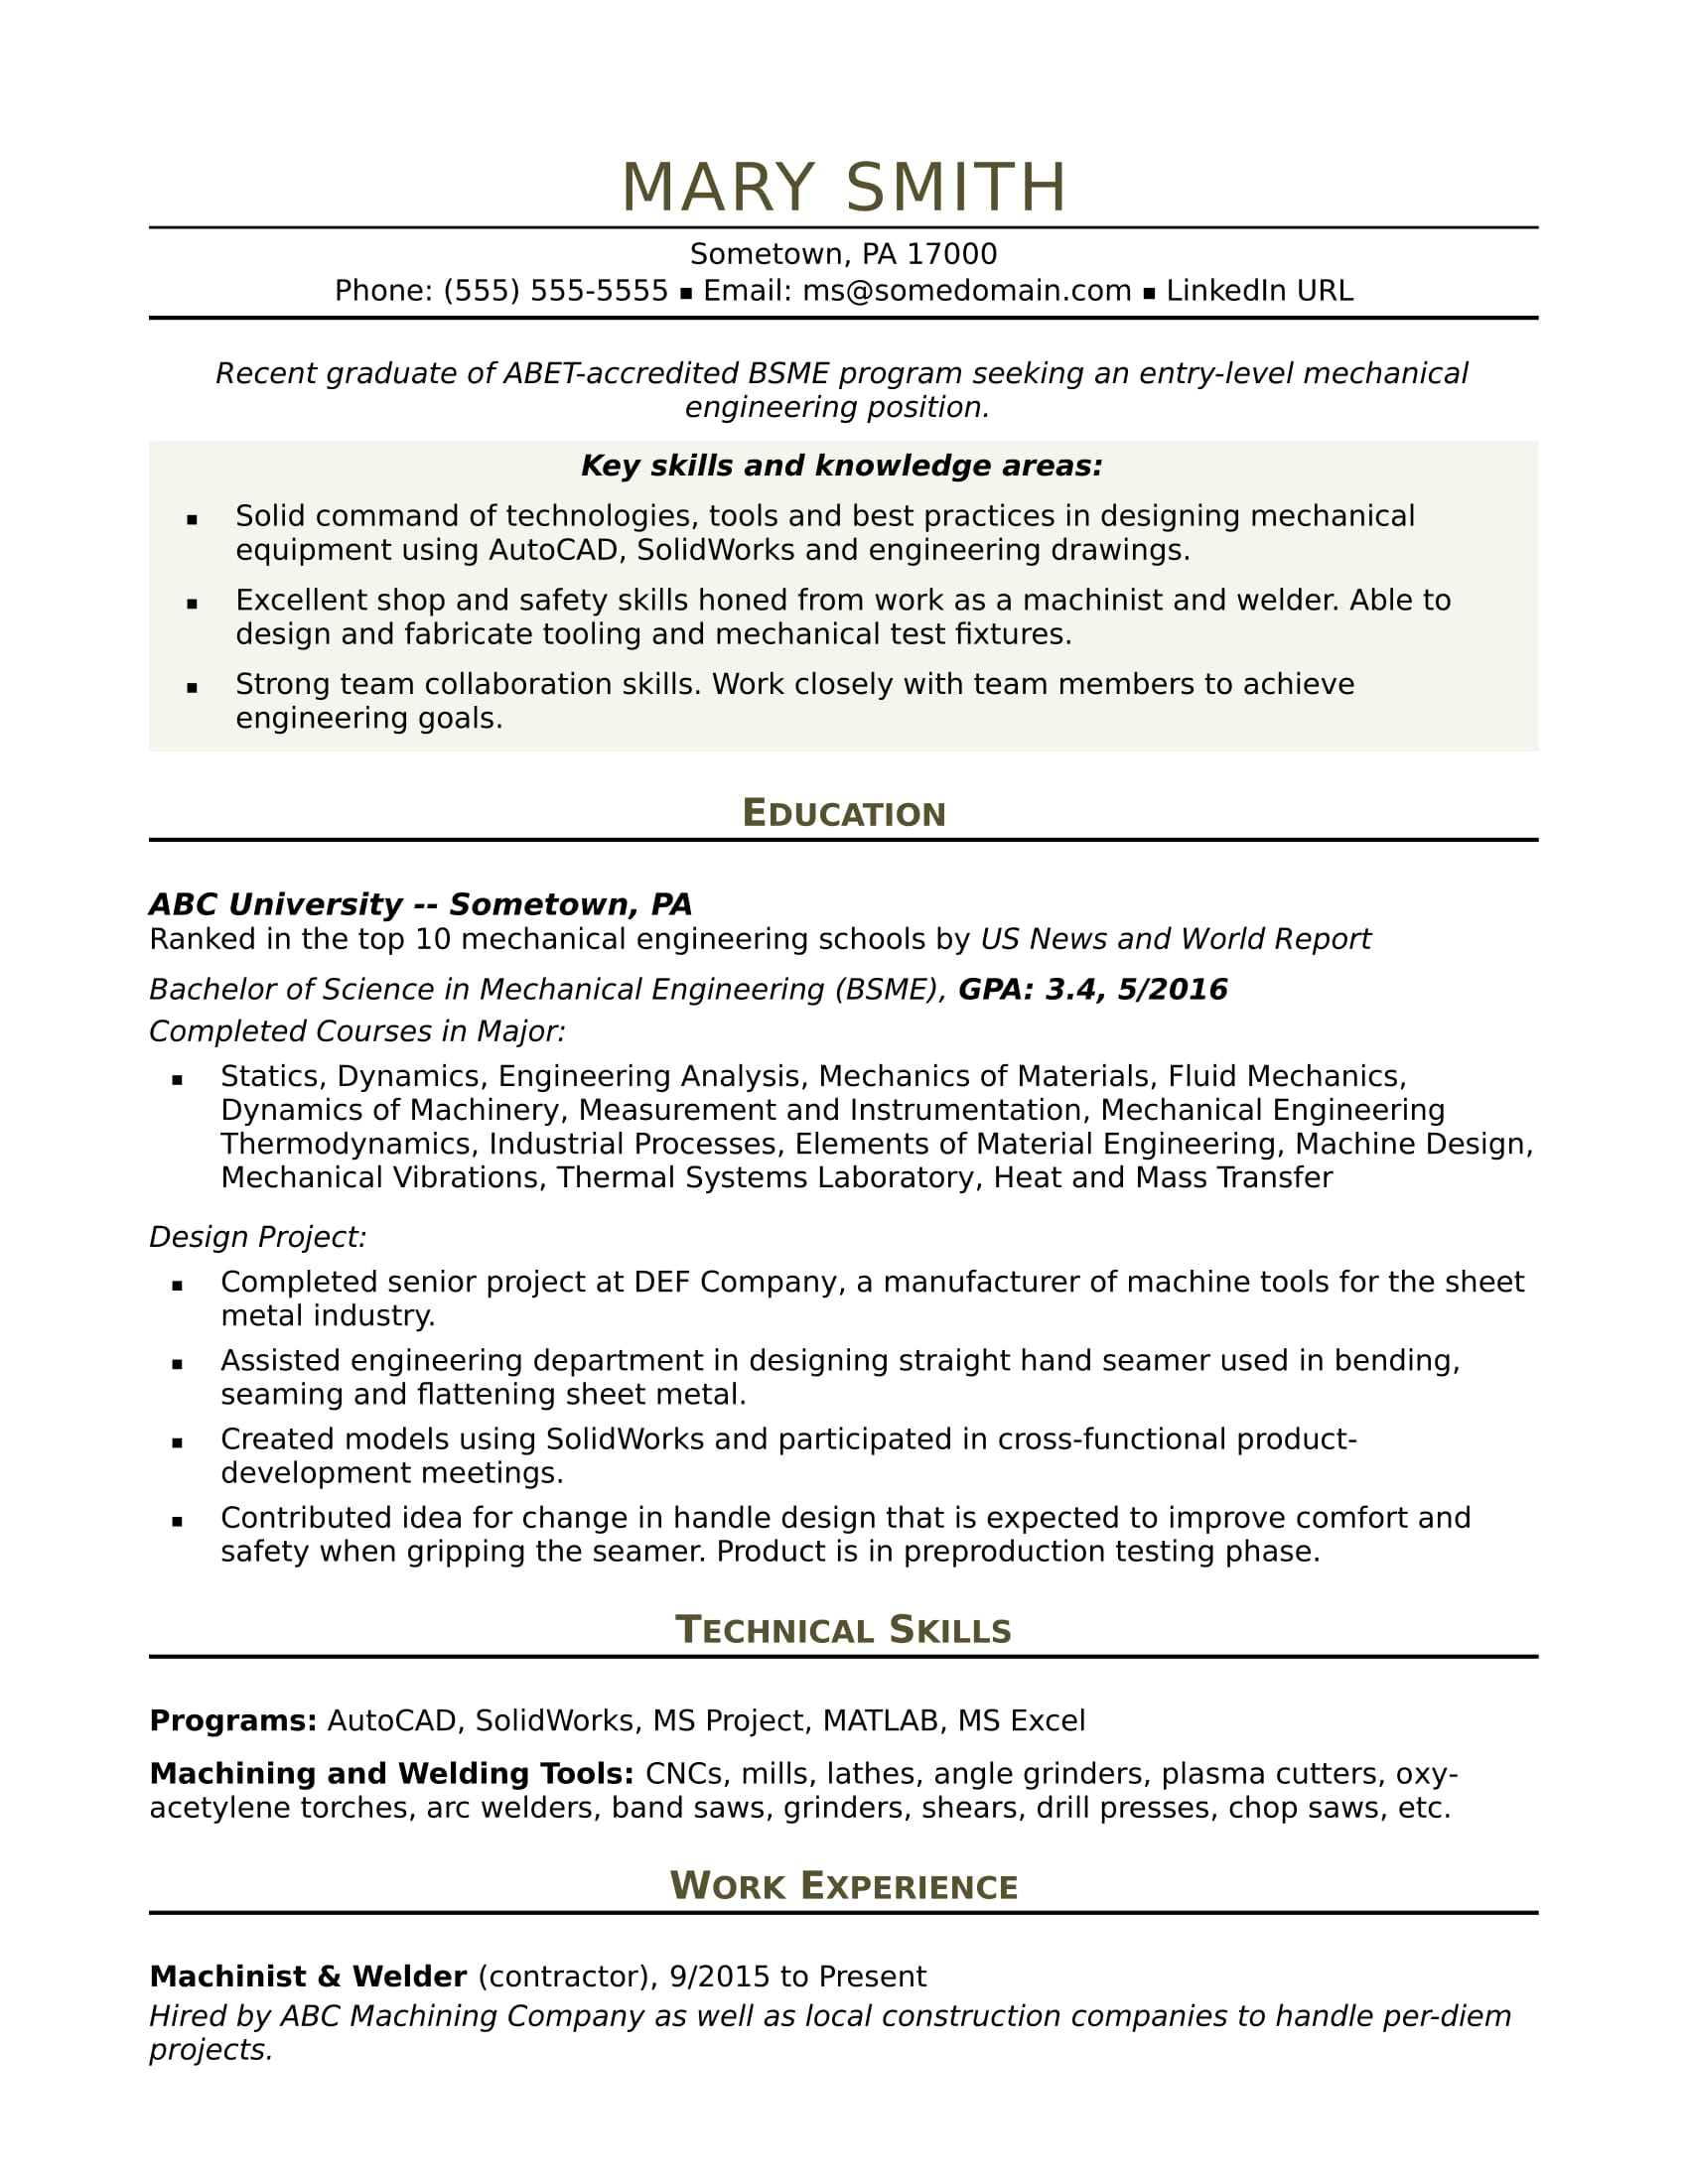 2 Years Experience Mechanical Engineer Resume Sample Resume For An Entry Level Mechanical Engineer